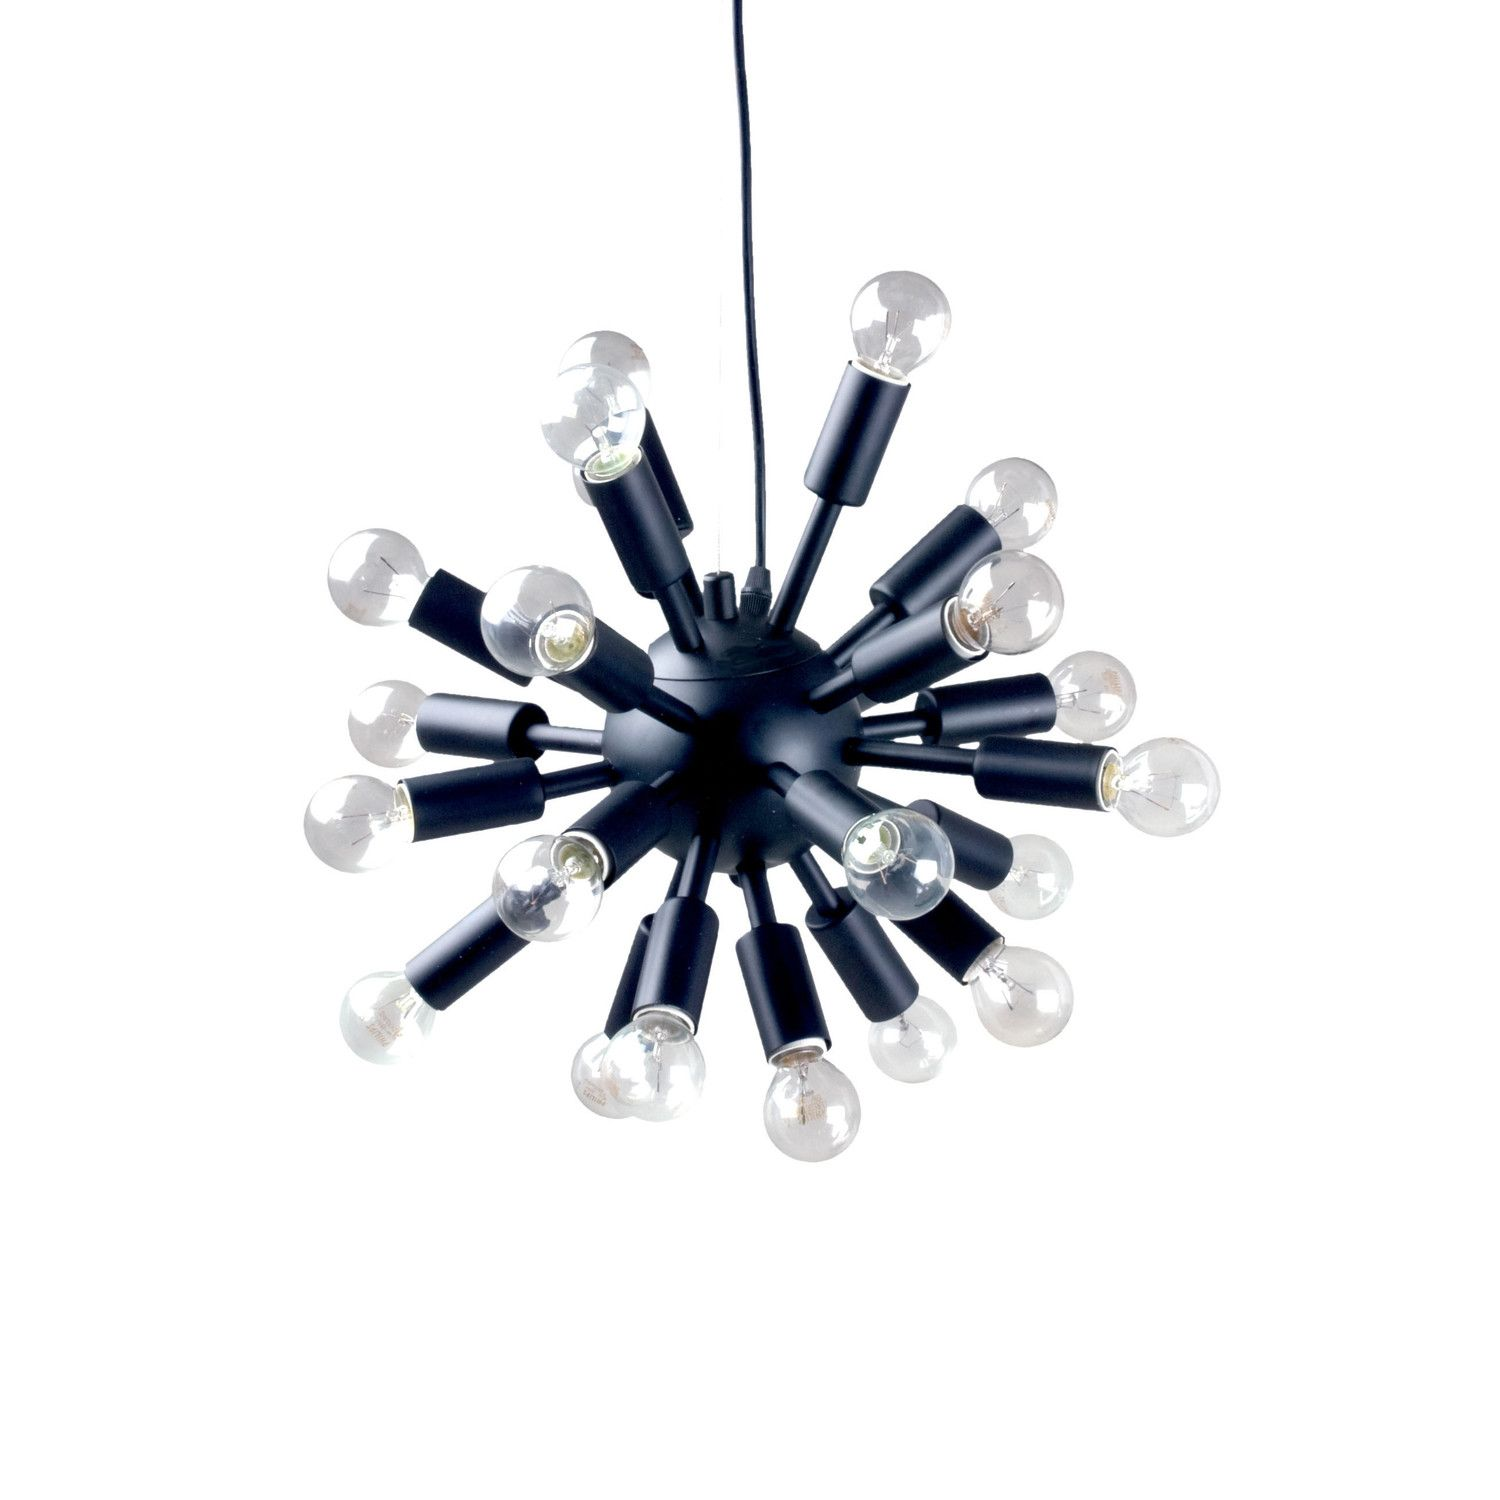 Pendant lamp cosmos black by leitmotiv design team httpwww pendant lamp cosmos black by leitmotiv design team httptouchofmodern arubaitofo Image collections